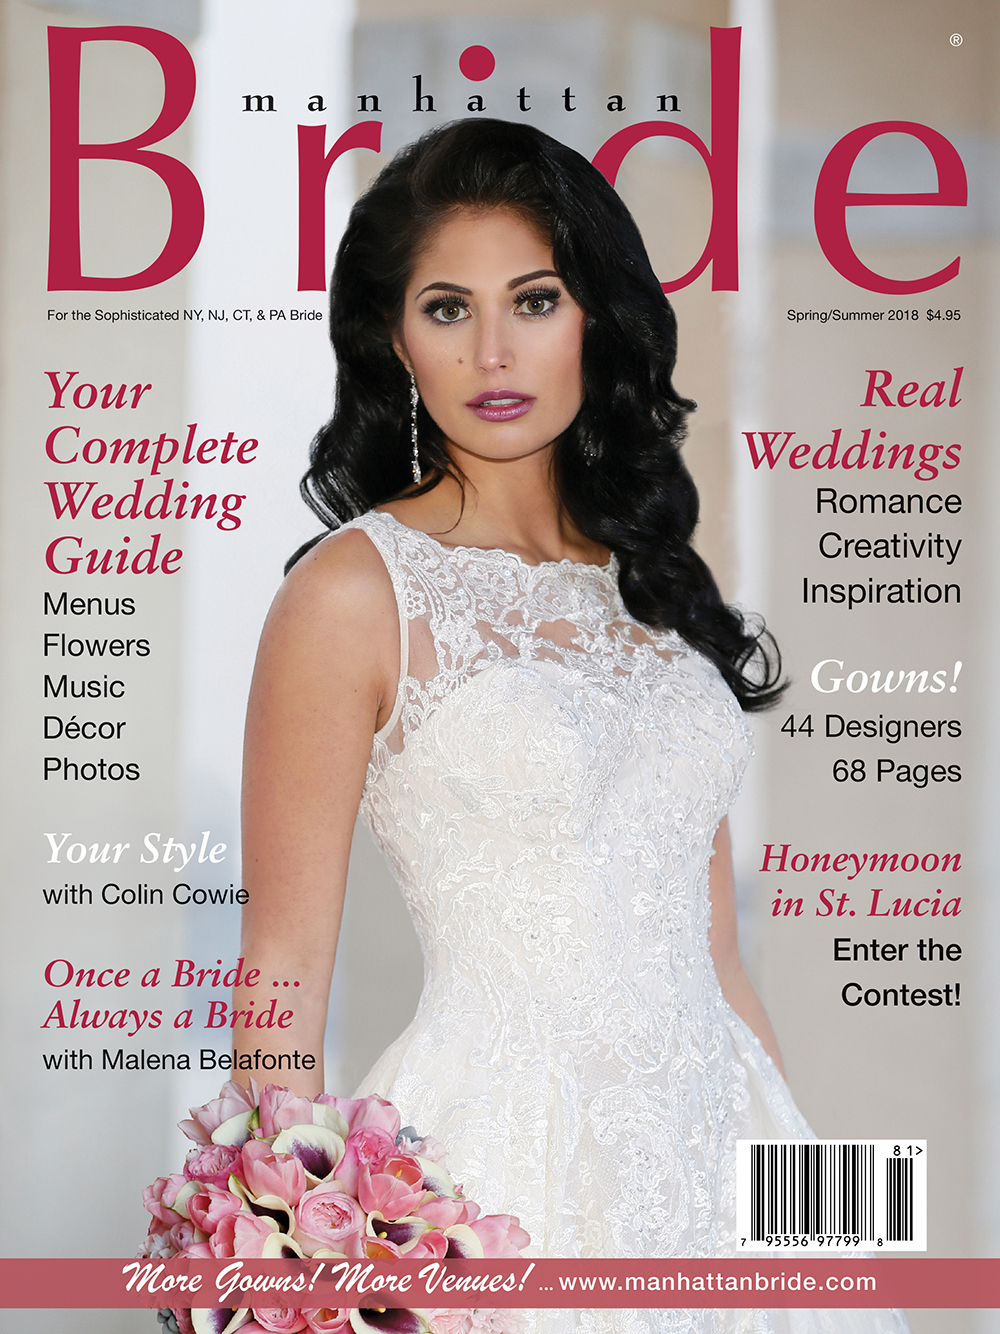 Manhattan Bride Cover Spring/Summer 2018